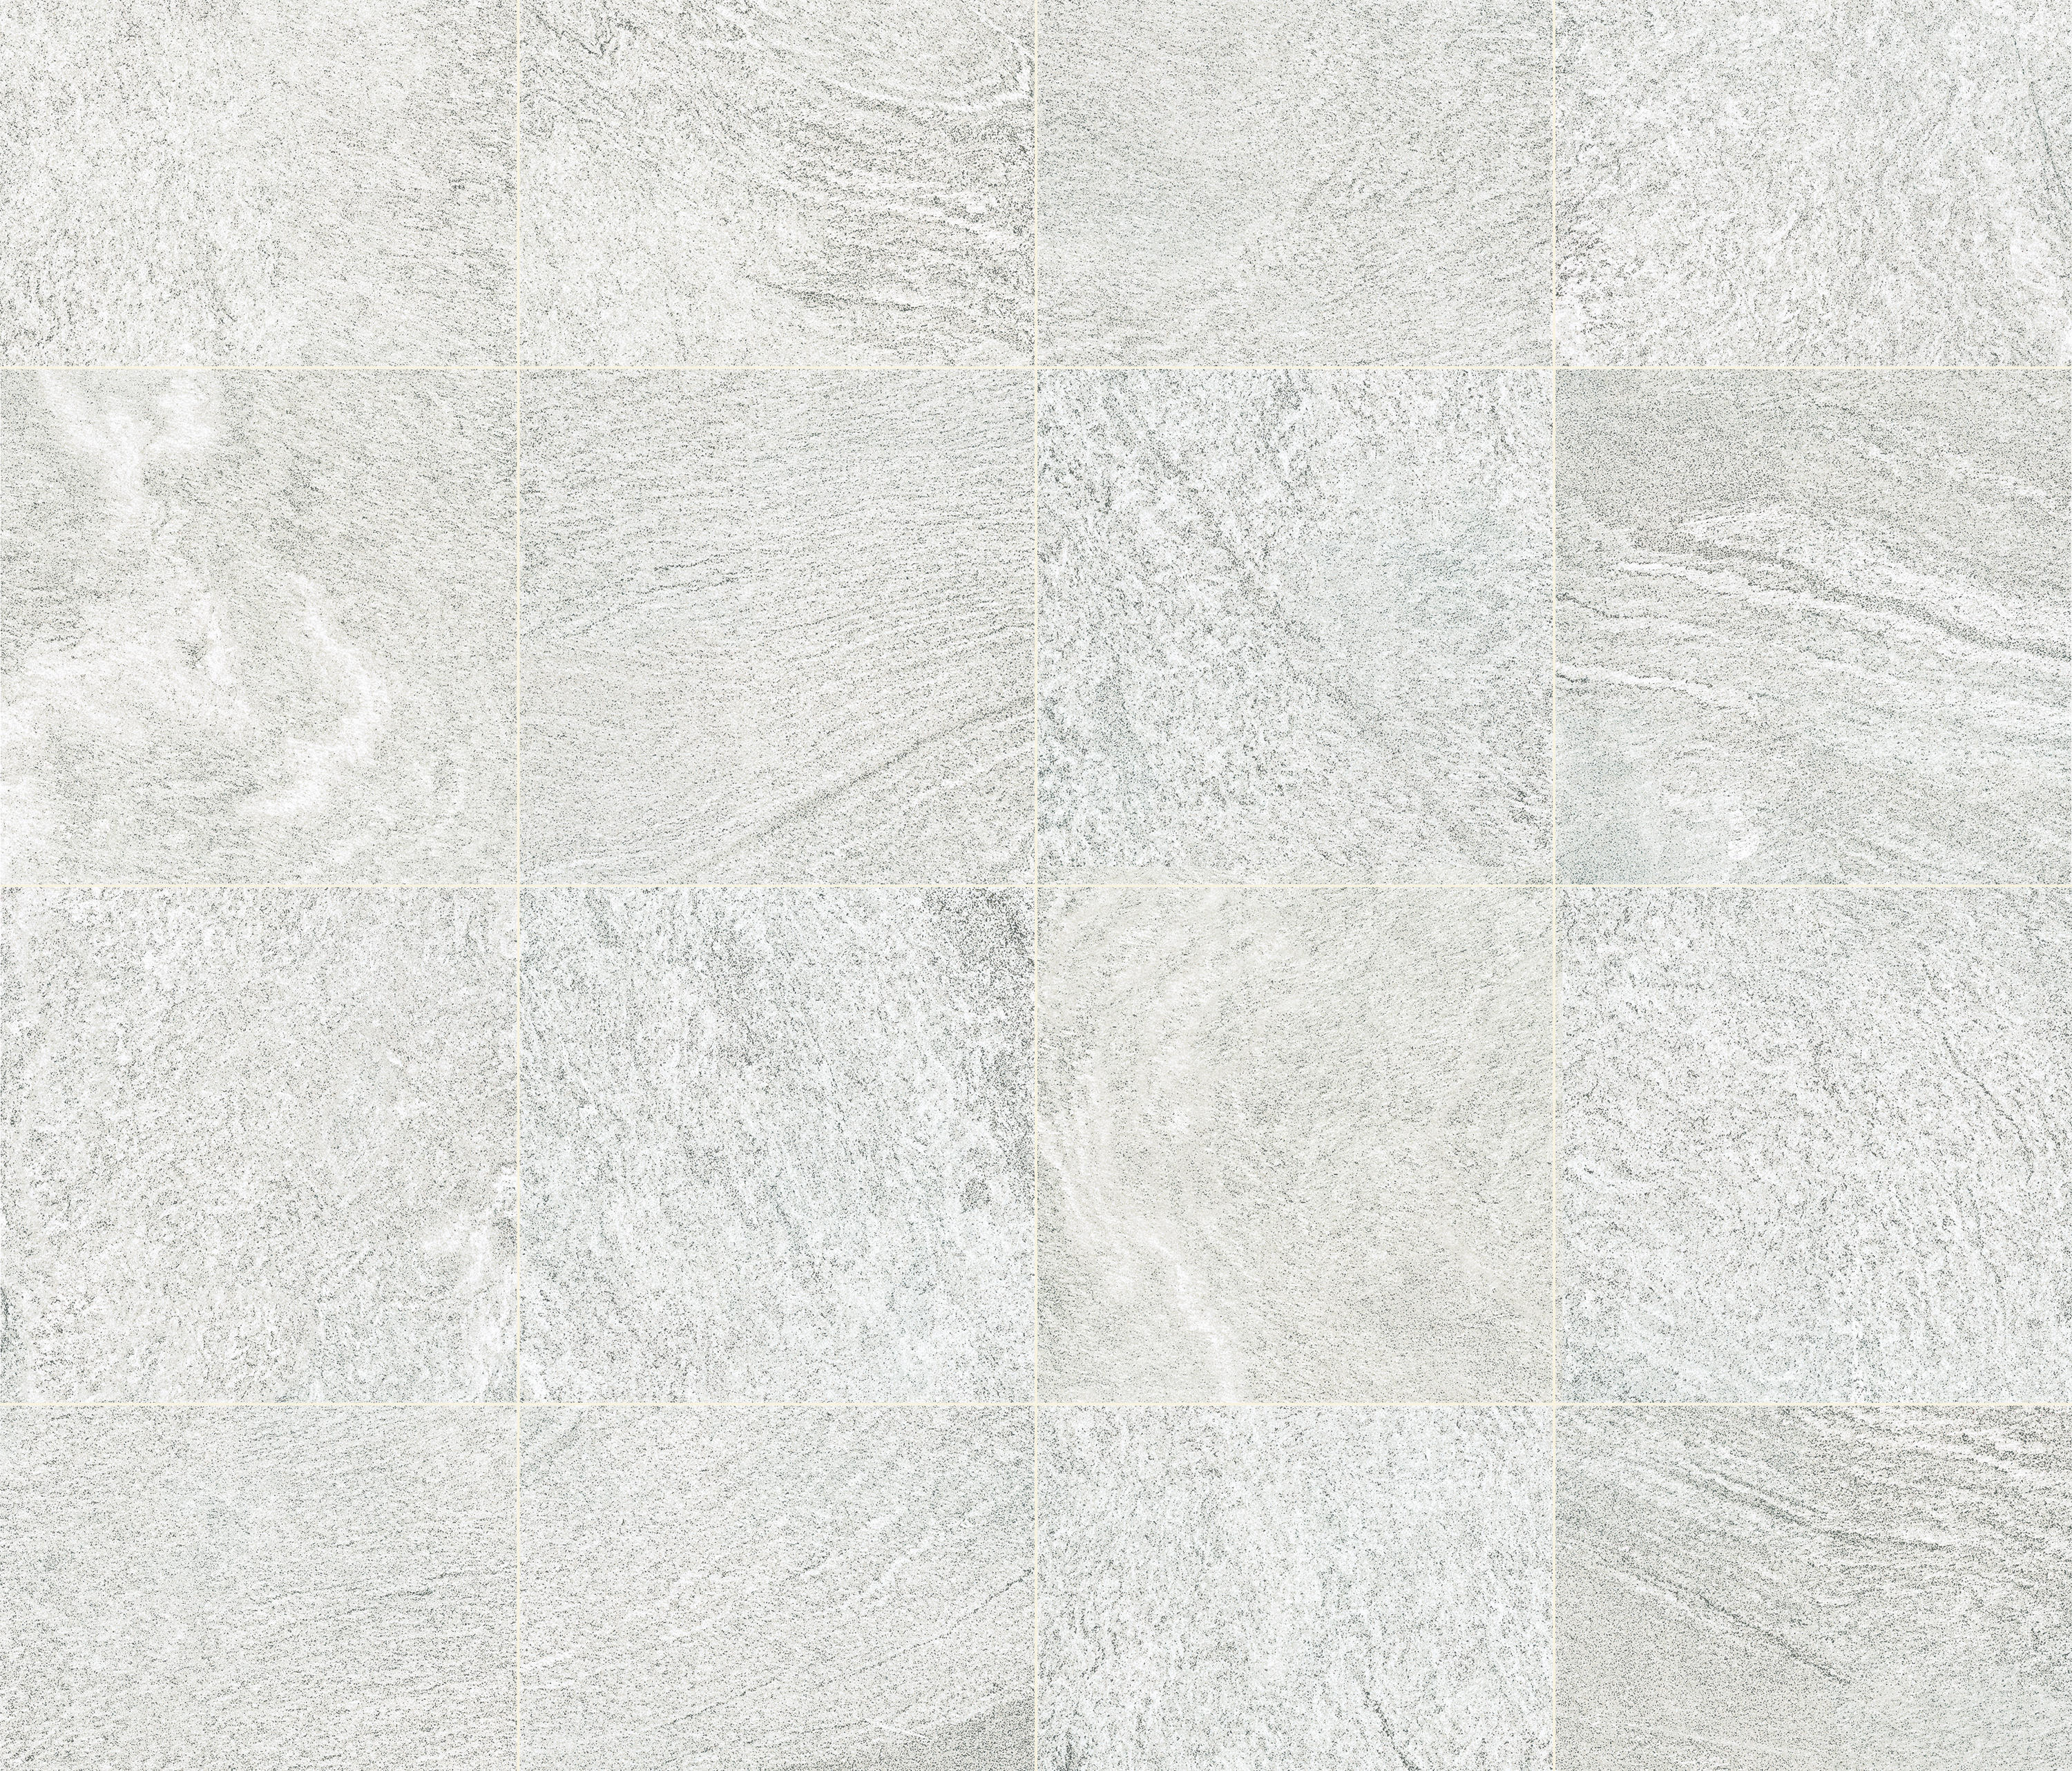 Quartz white floor tiles from ceramica magica architonic quartz white by ceramica magica floor tiles dailygadgetfo Images